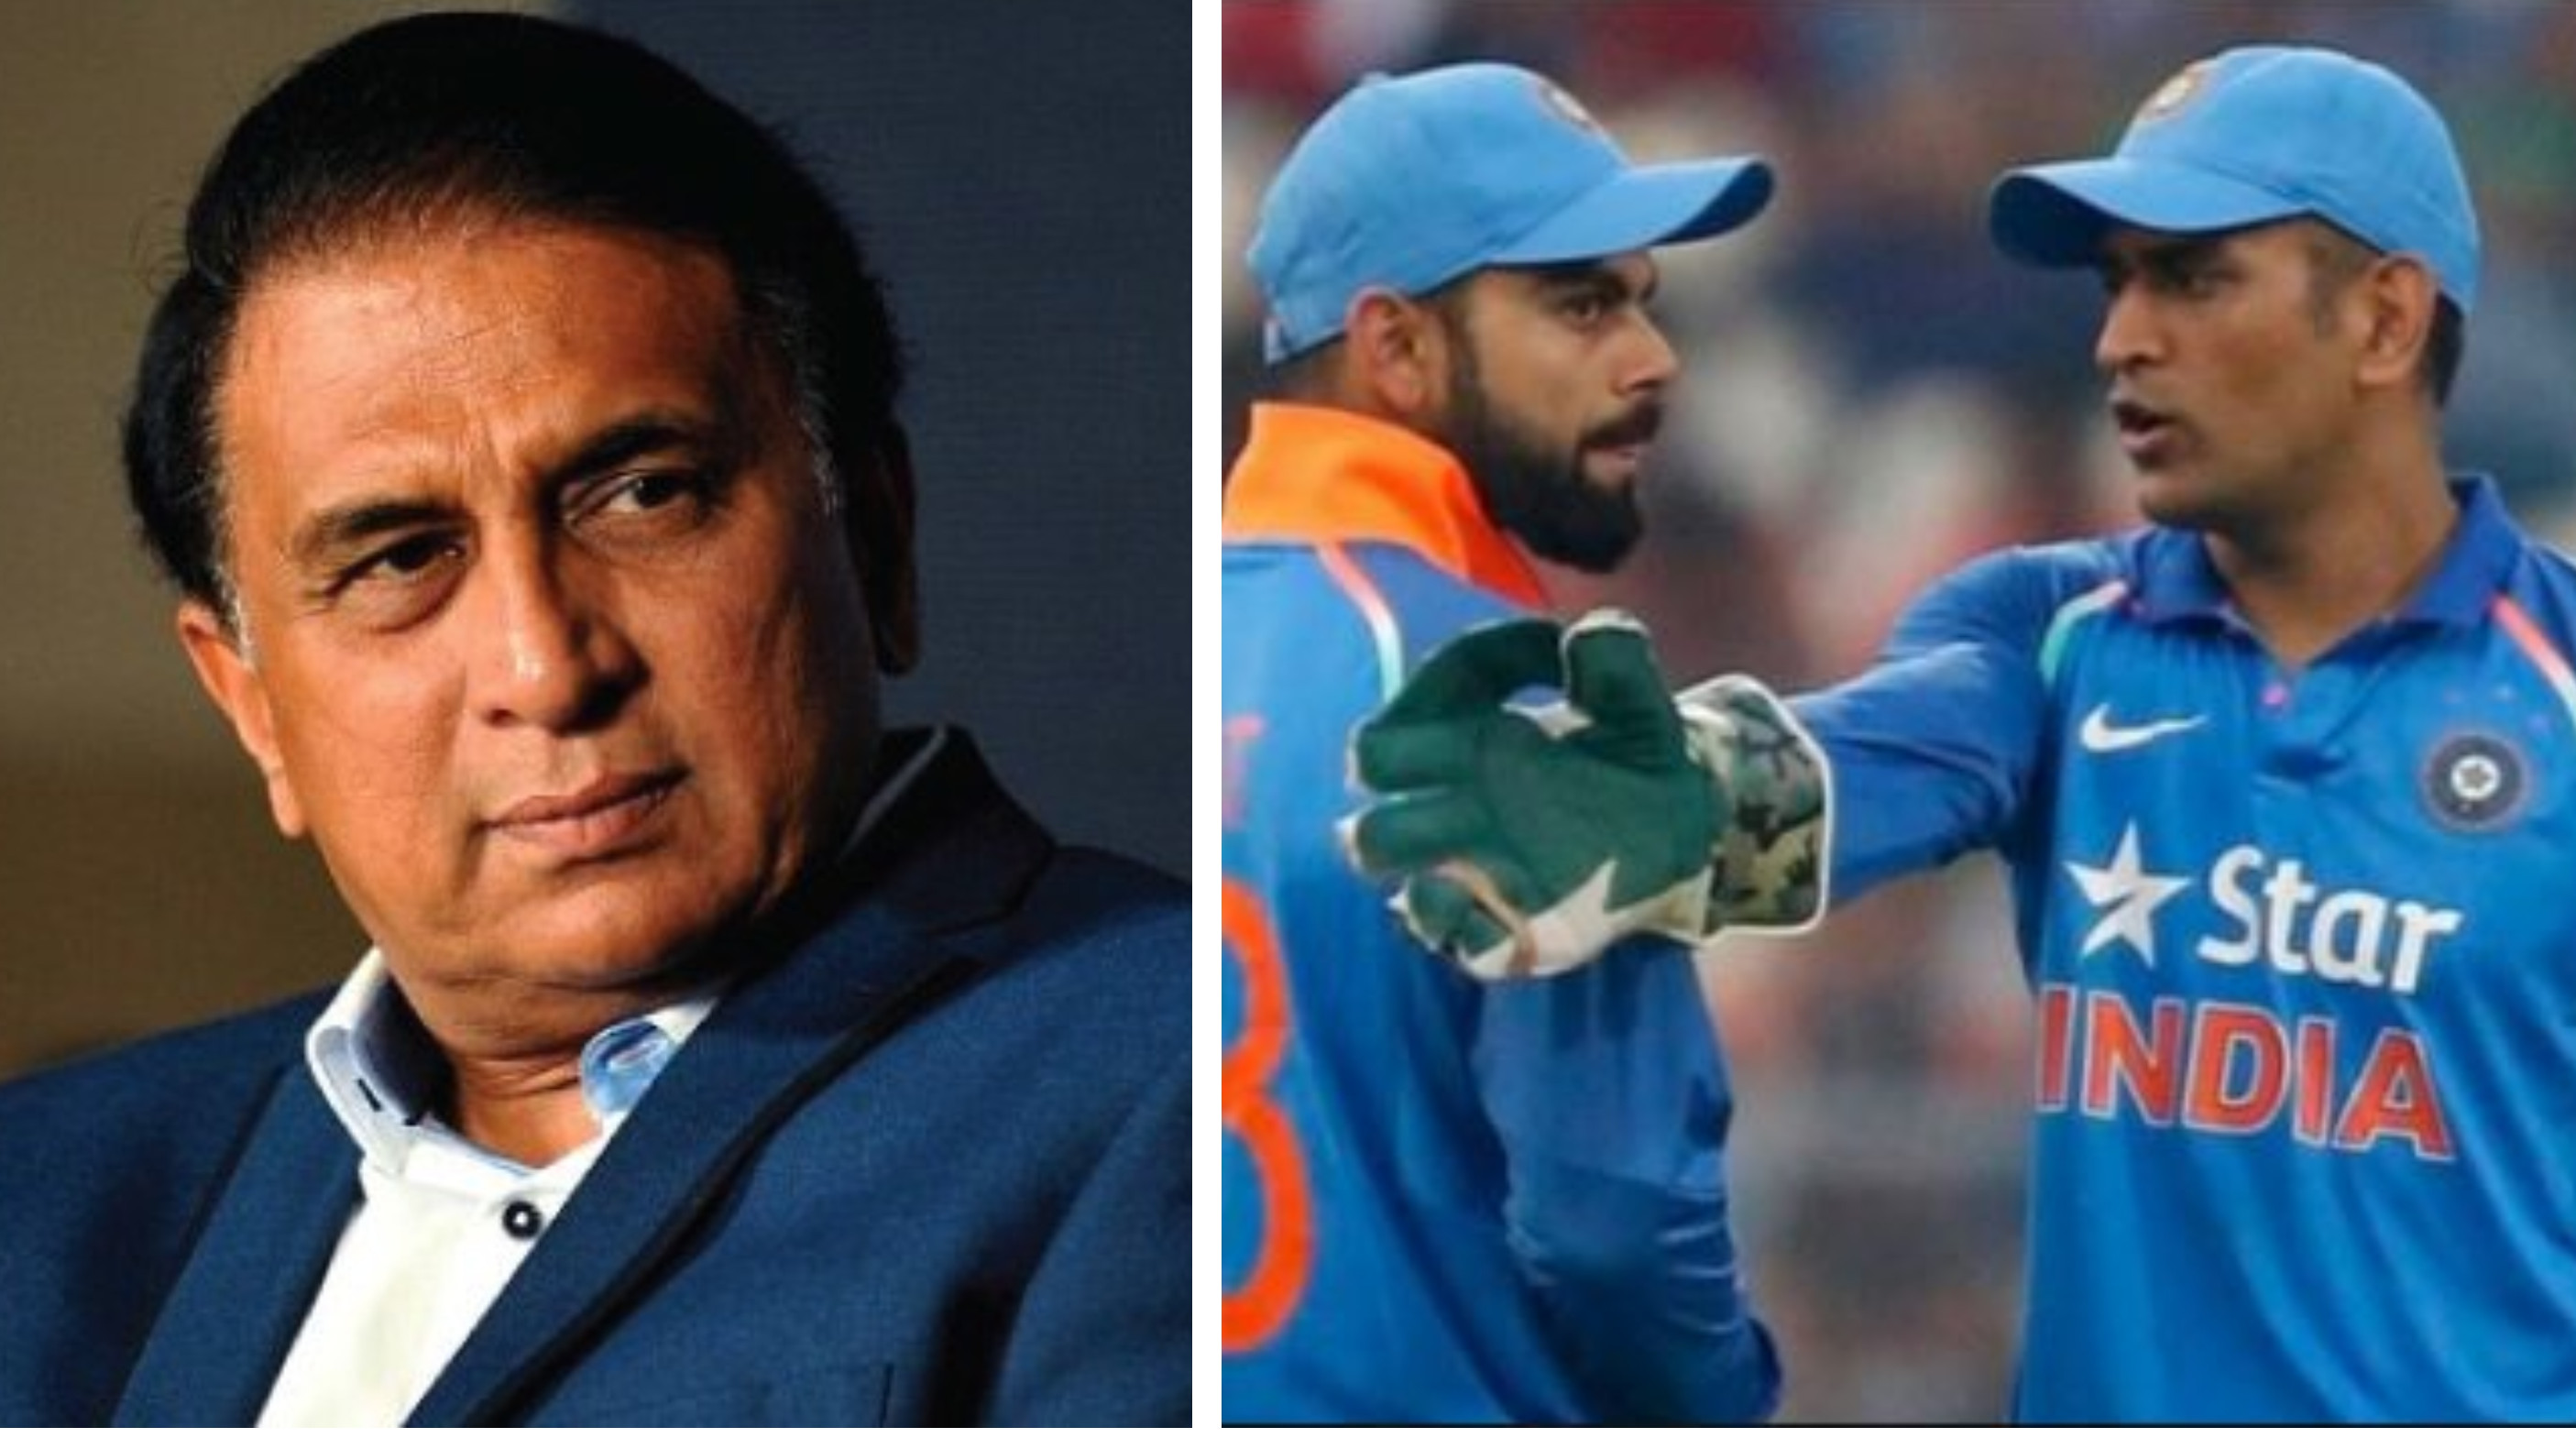 MS Dhoni should play the World Cup as he takes pressure off Virat, says Sunil Gavaskar